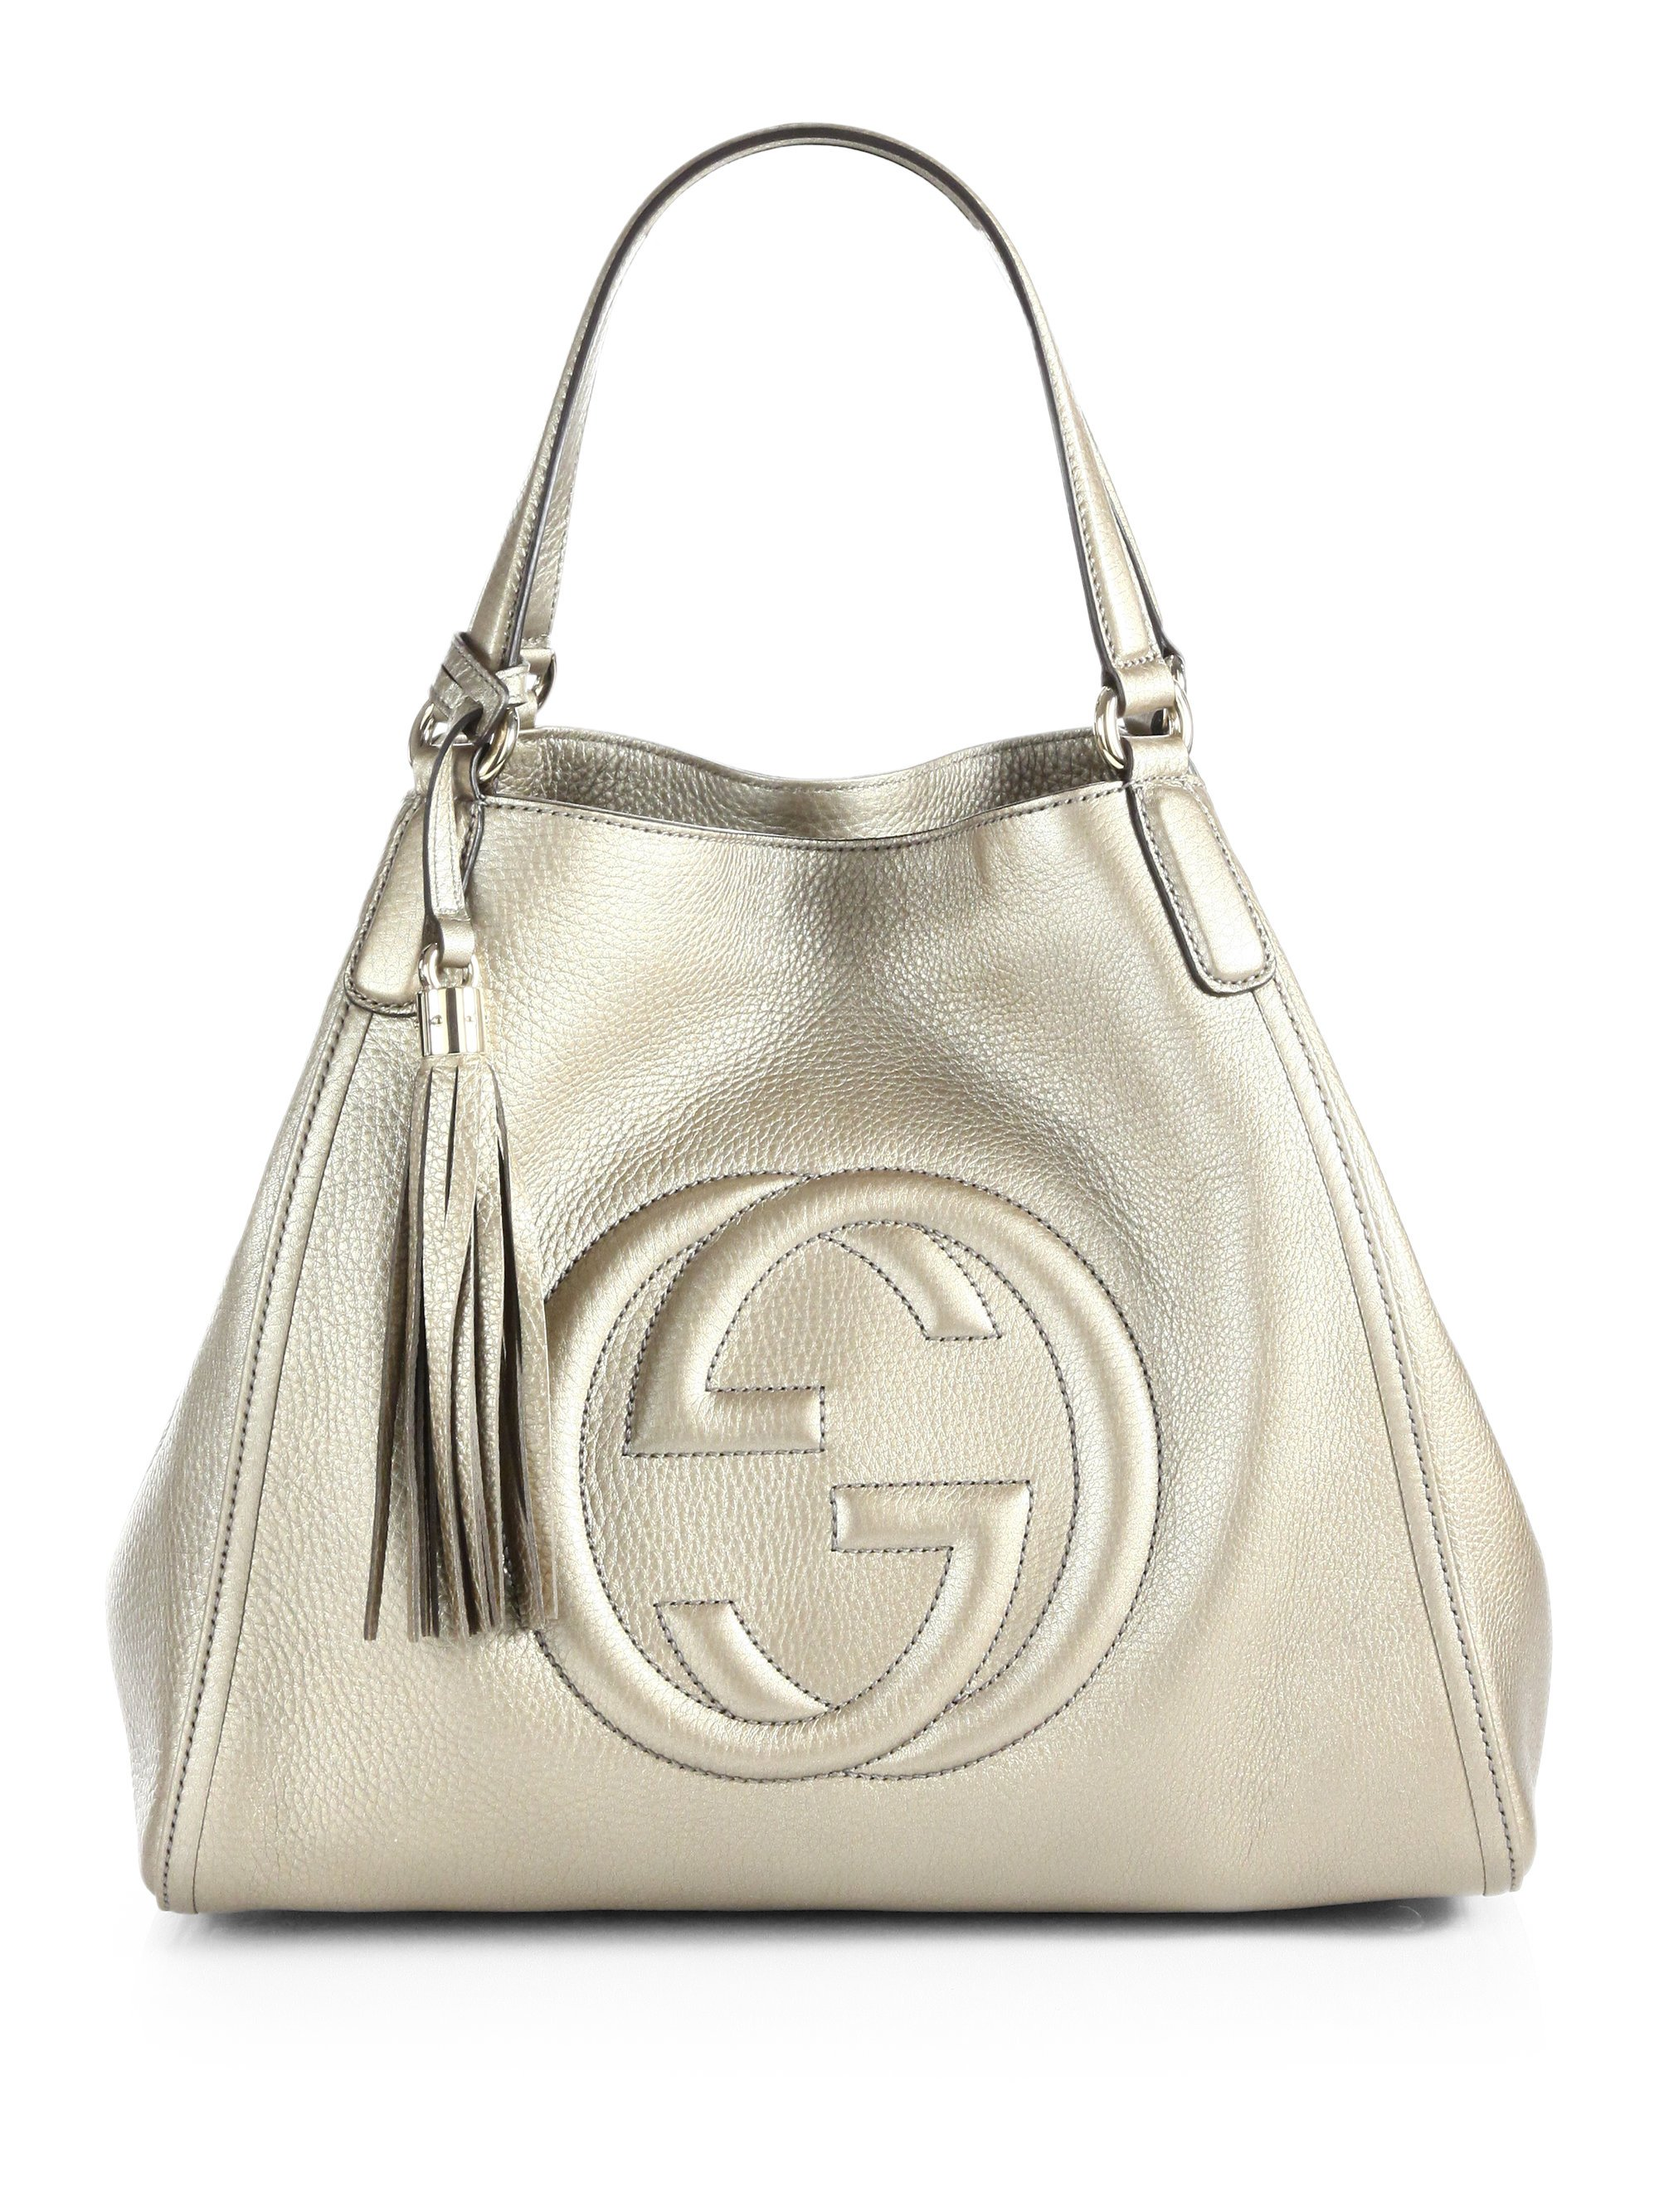 371cf0587b82 Lyst - Gucci Soho Metallic Leather Shoulder Bag in White